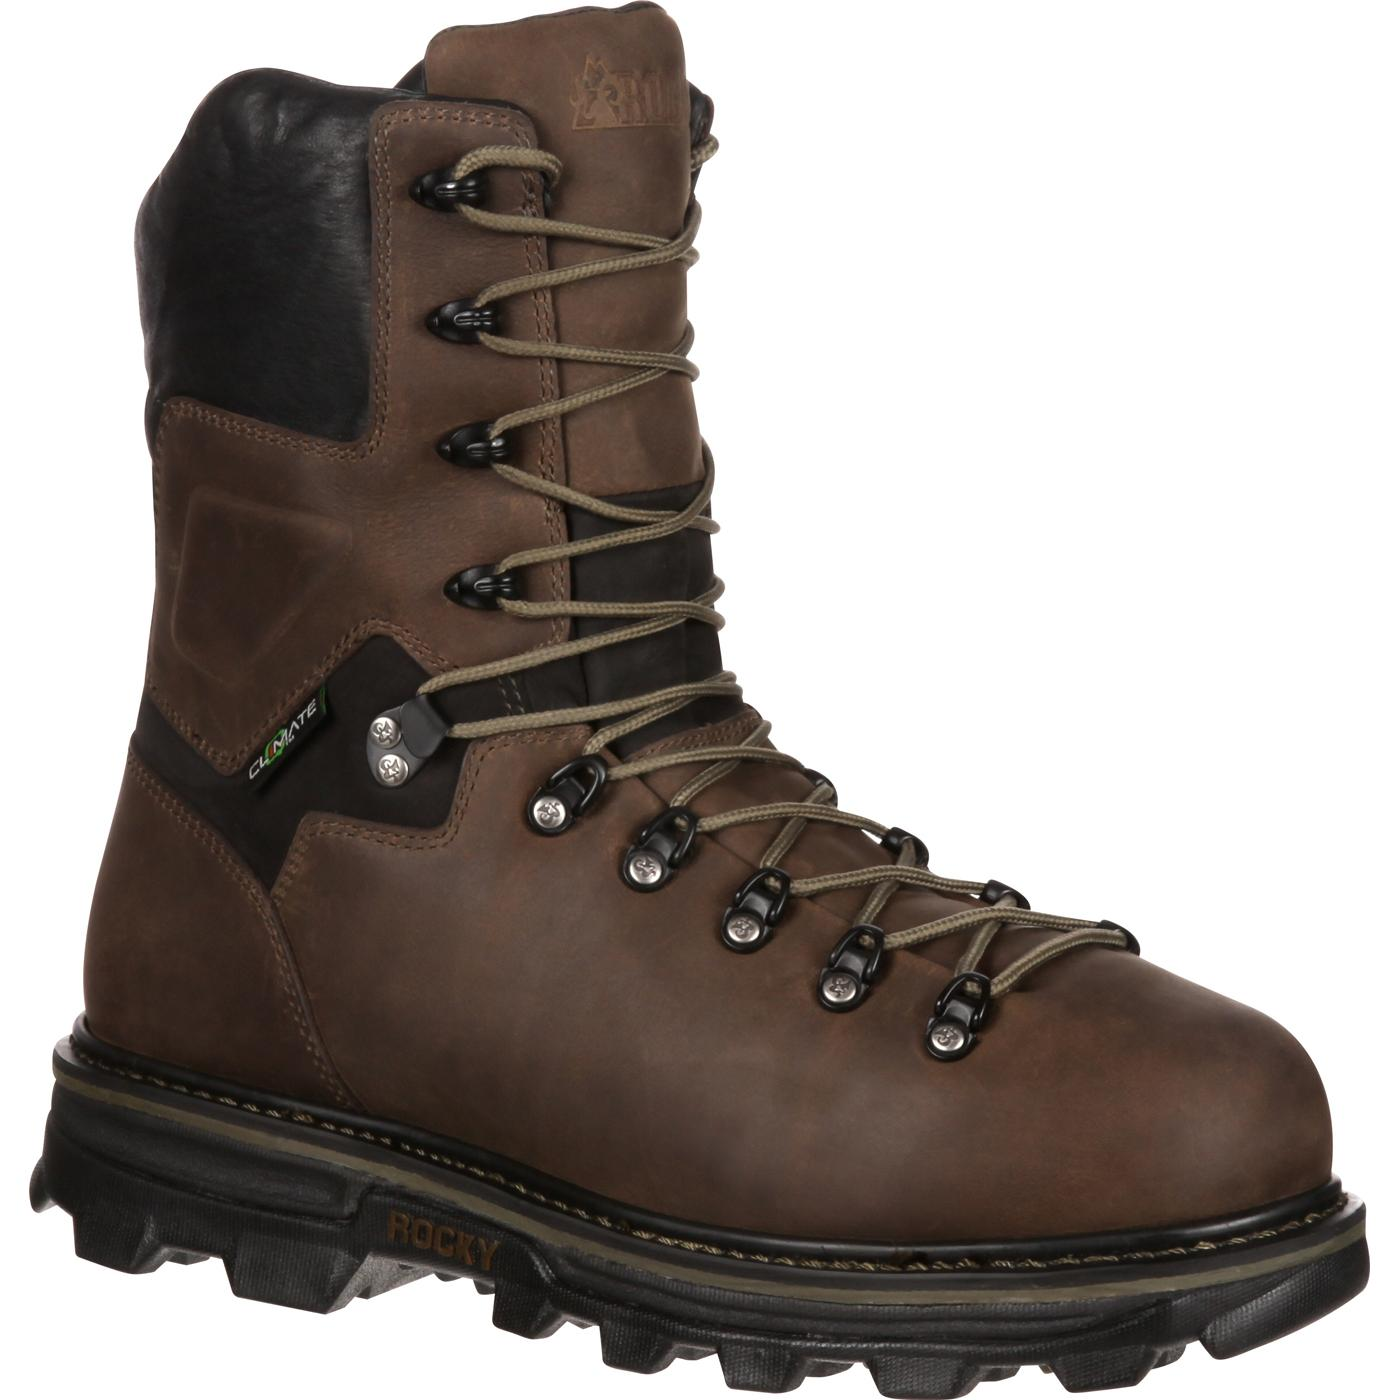 Mens Insulated Boots 7eL3kWiV